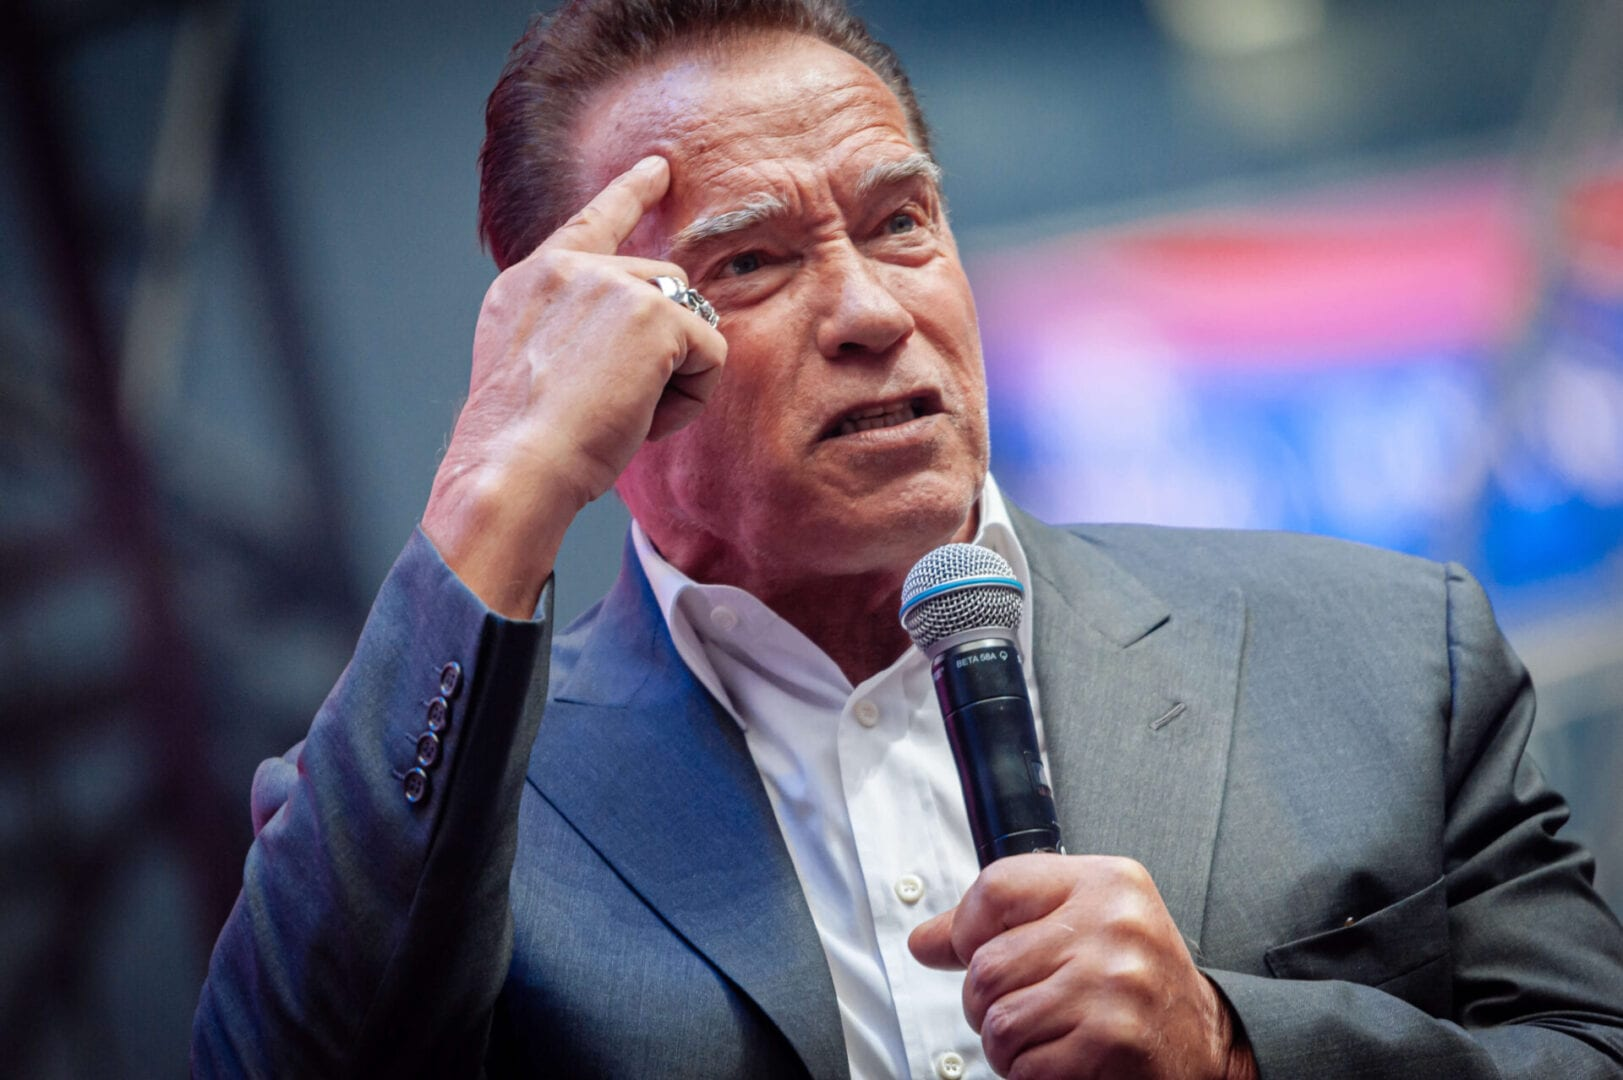 Arnold Schwarzenegger talking at event and pointing to head